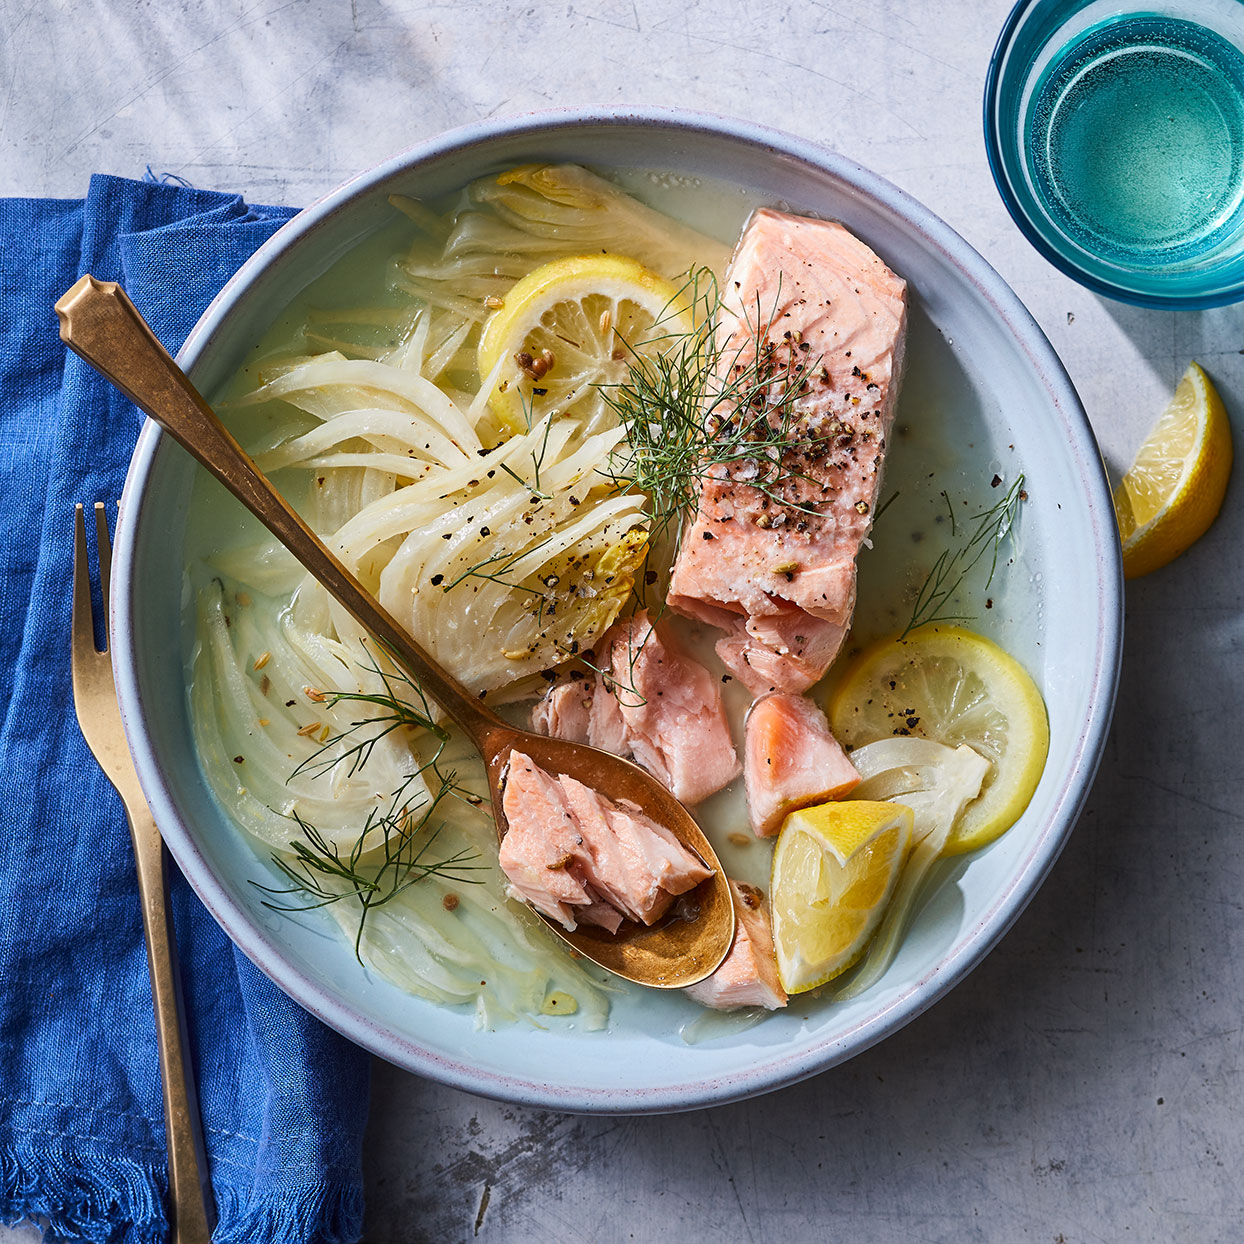 This poached salmon recipe uses an aromatic broth to infuse the fish with flavor while keeping it moist. Cook it with the skin on and keep the simmer gentle to ensure the fish stays intact. If you can't find a fennel bulb with its greens still attached, don't panic. Just grab some dill to use instead. Source: EatingWell Magazine, April 2020